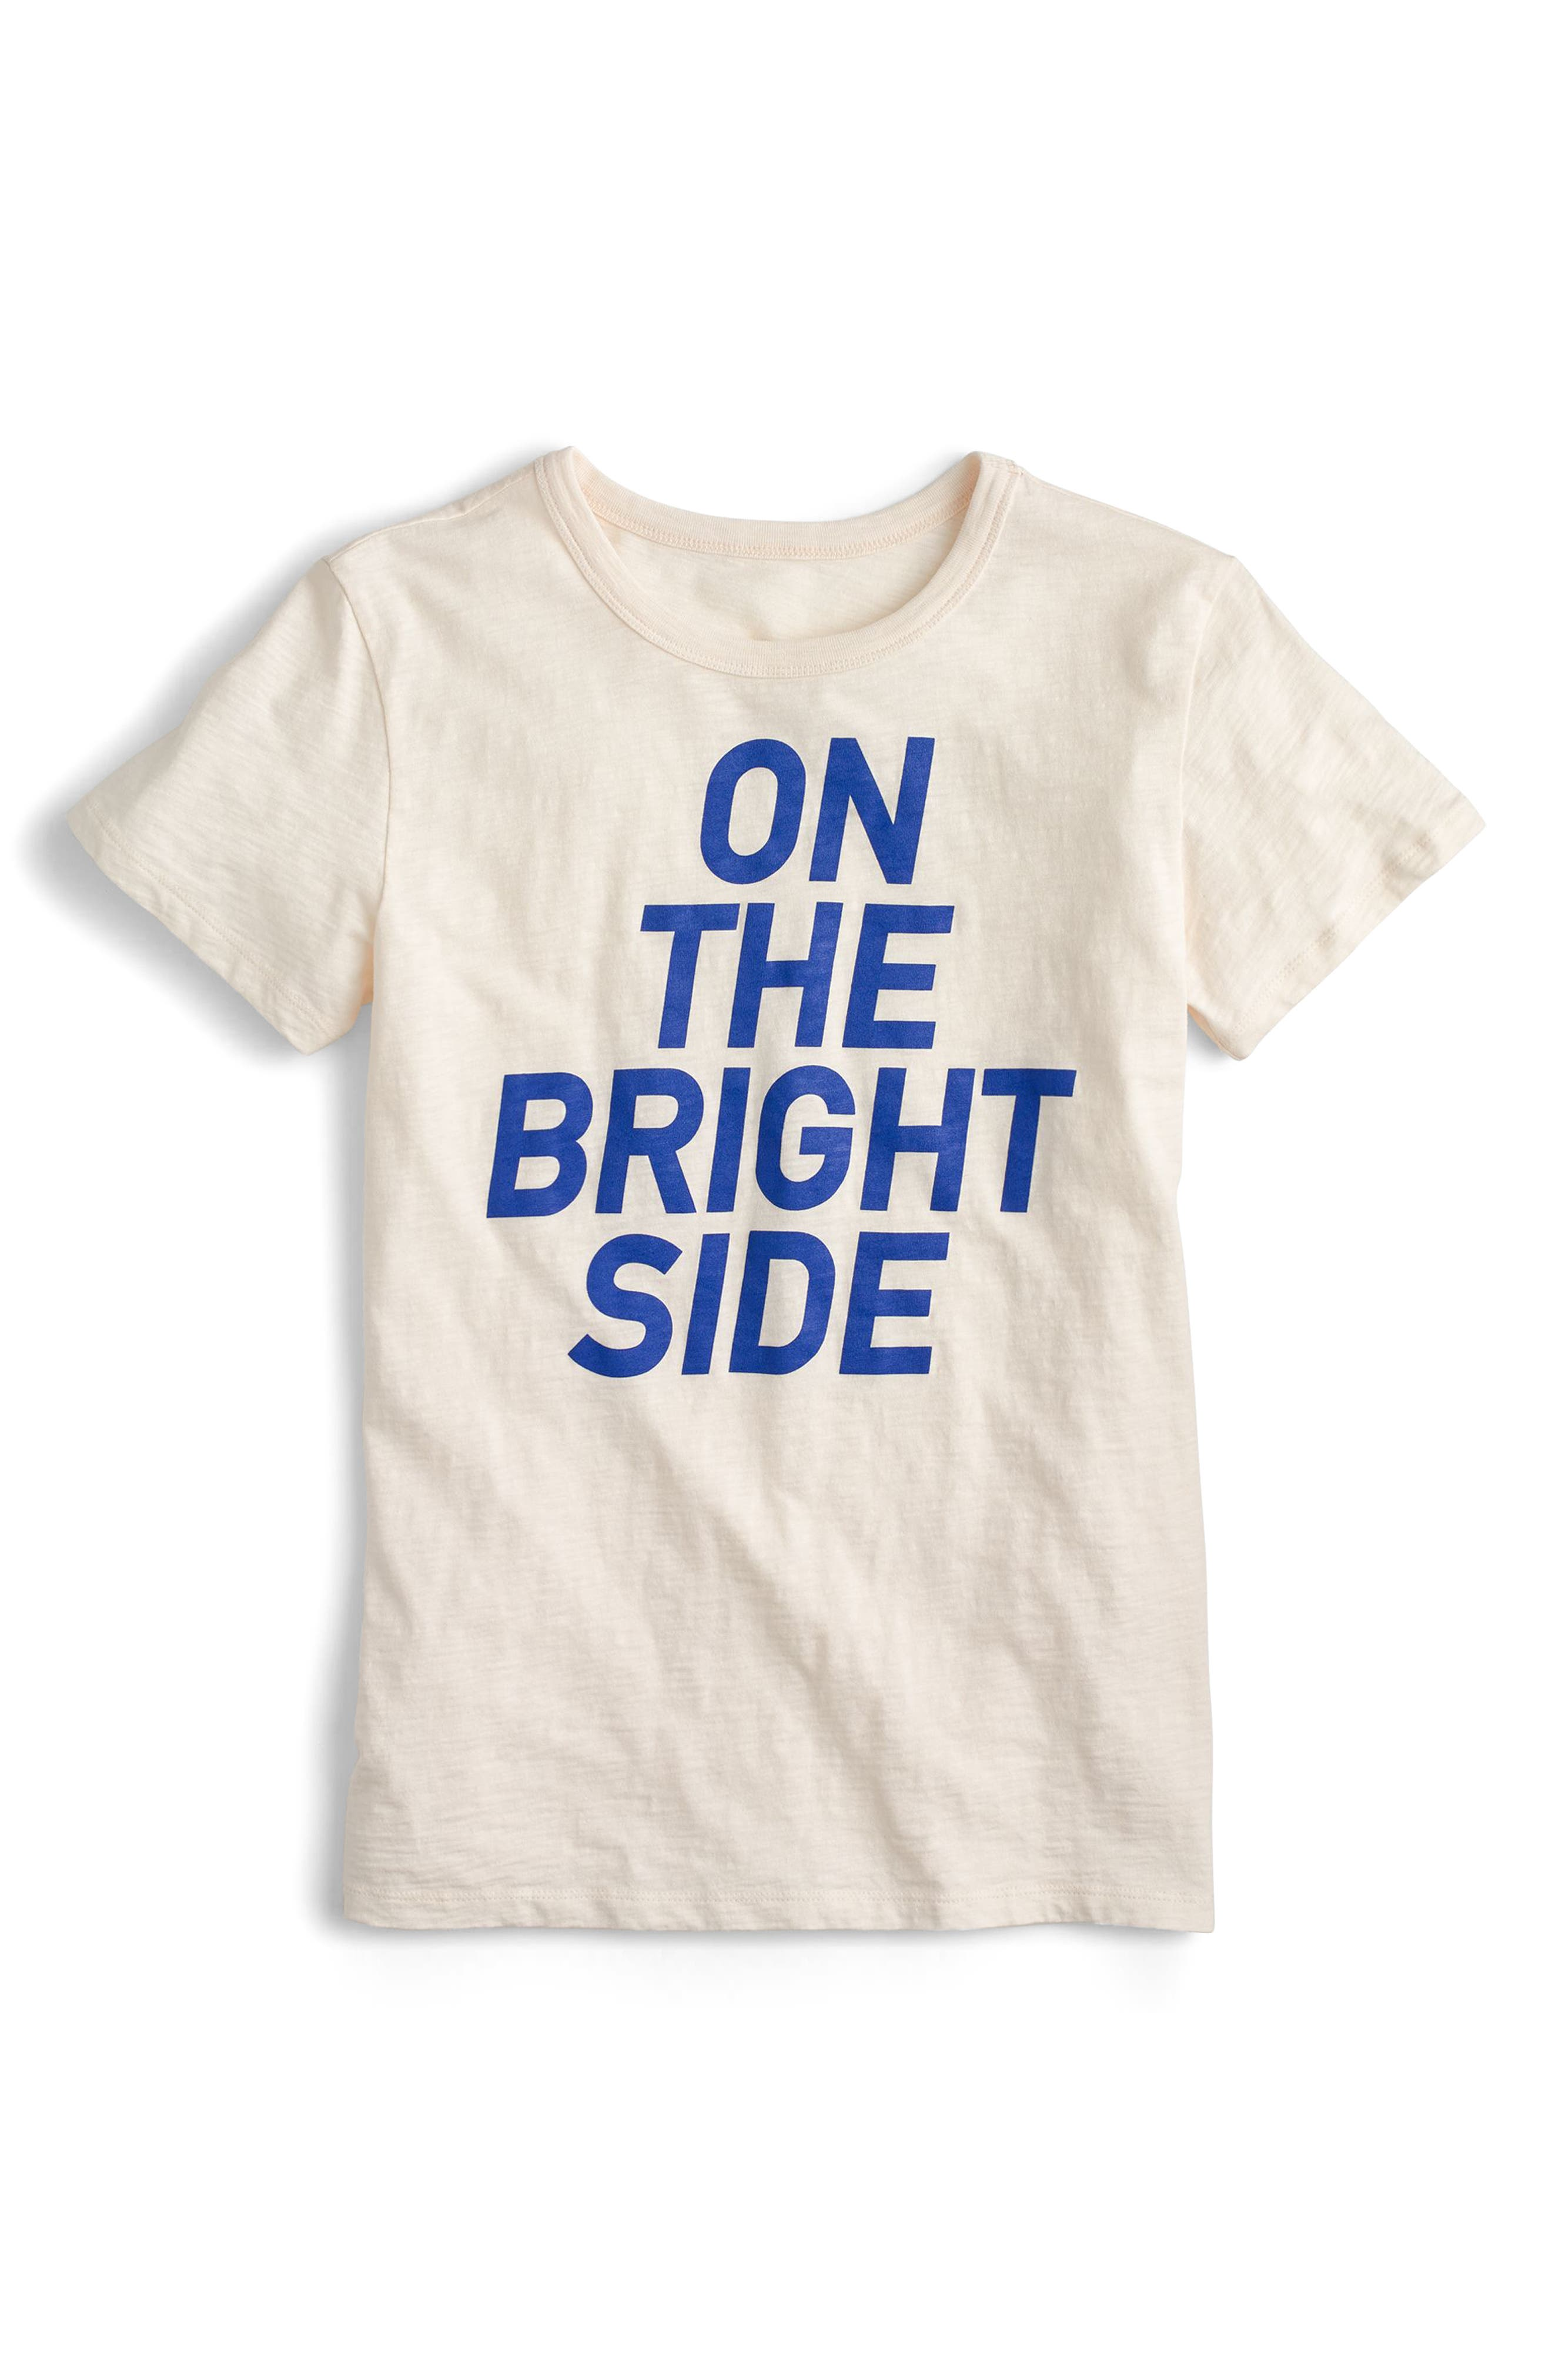 J.Crew On the Bright Side Tee,                         Main,                         color, Ivory